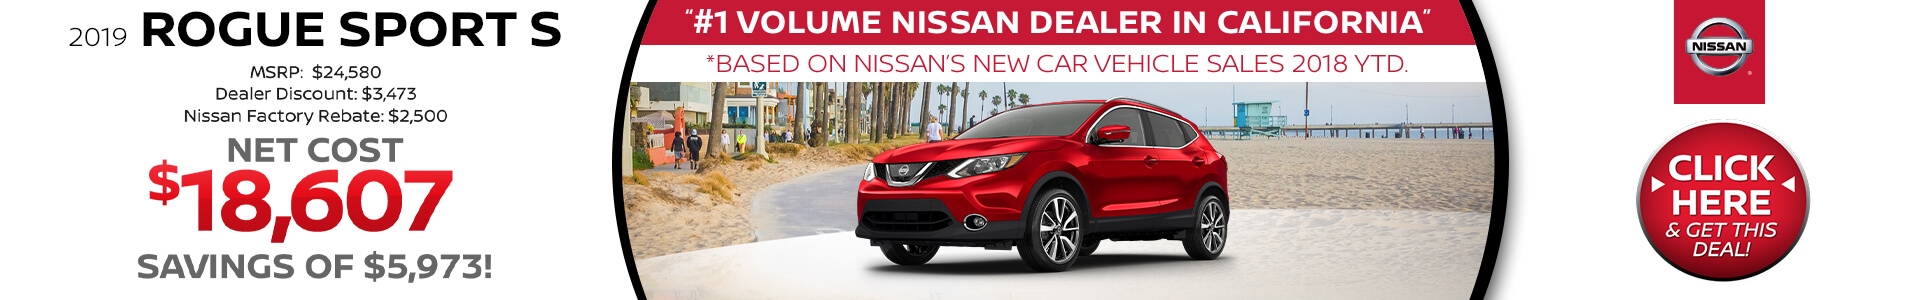 Nissan Rogue Sport Purchase